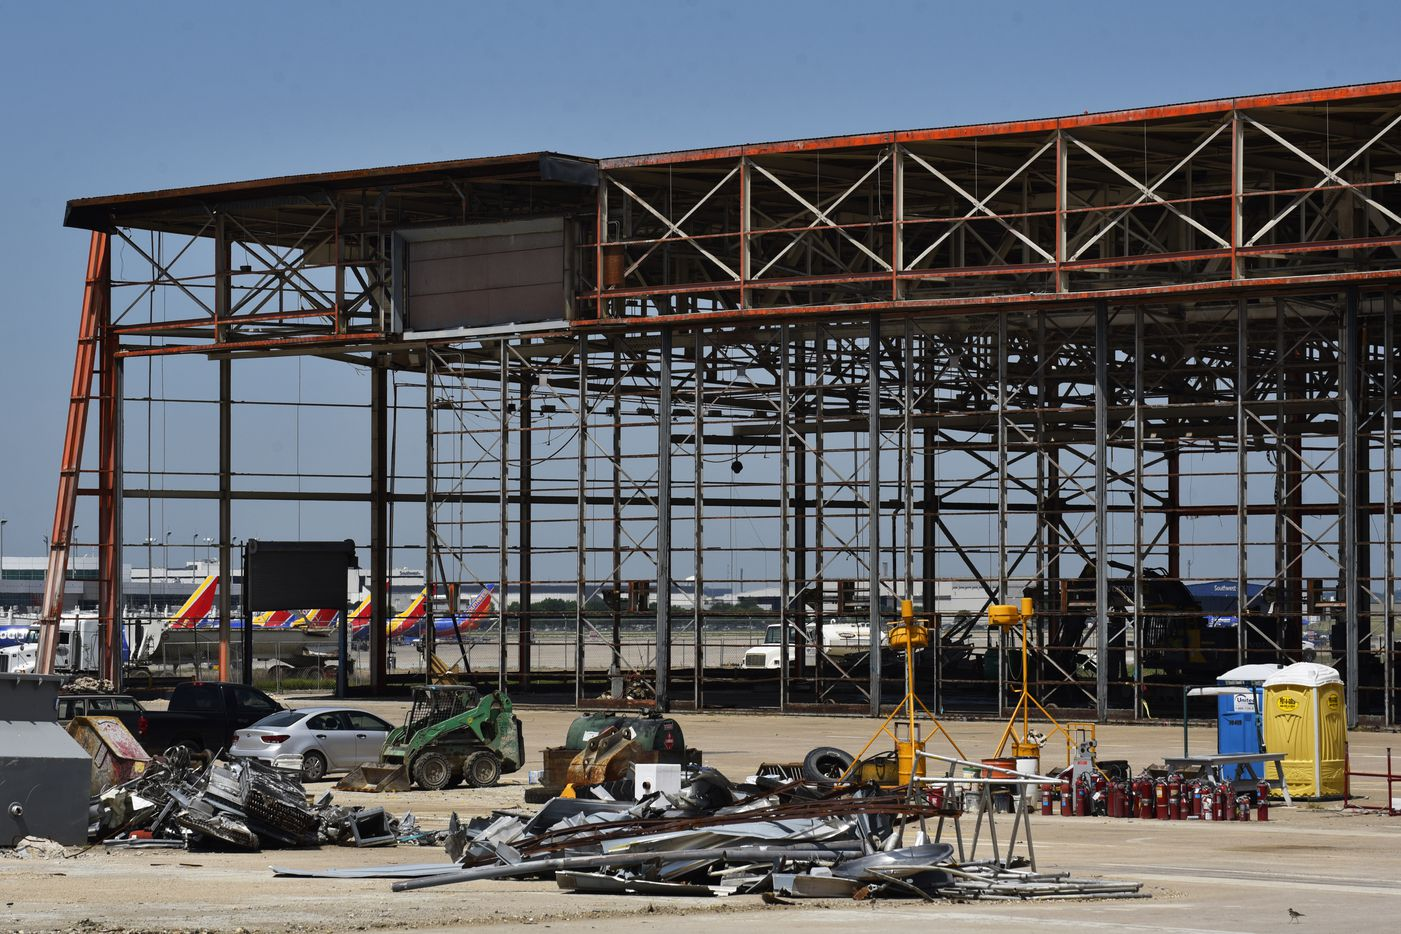 The old Braniff hangars at Dallas Love Field are being renovated just across the runway from the passenger terminal.